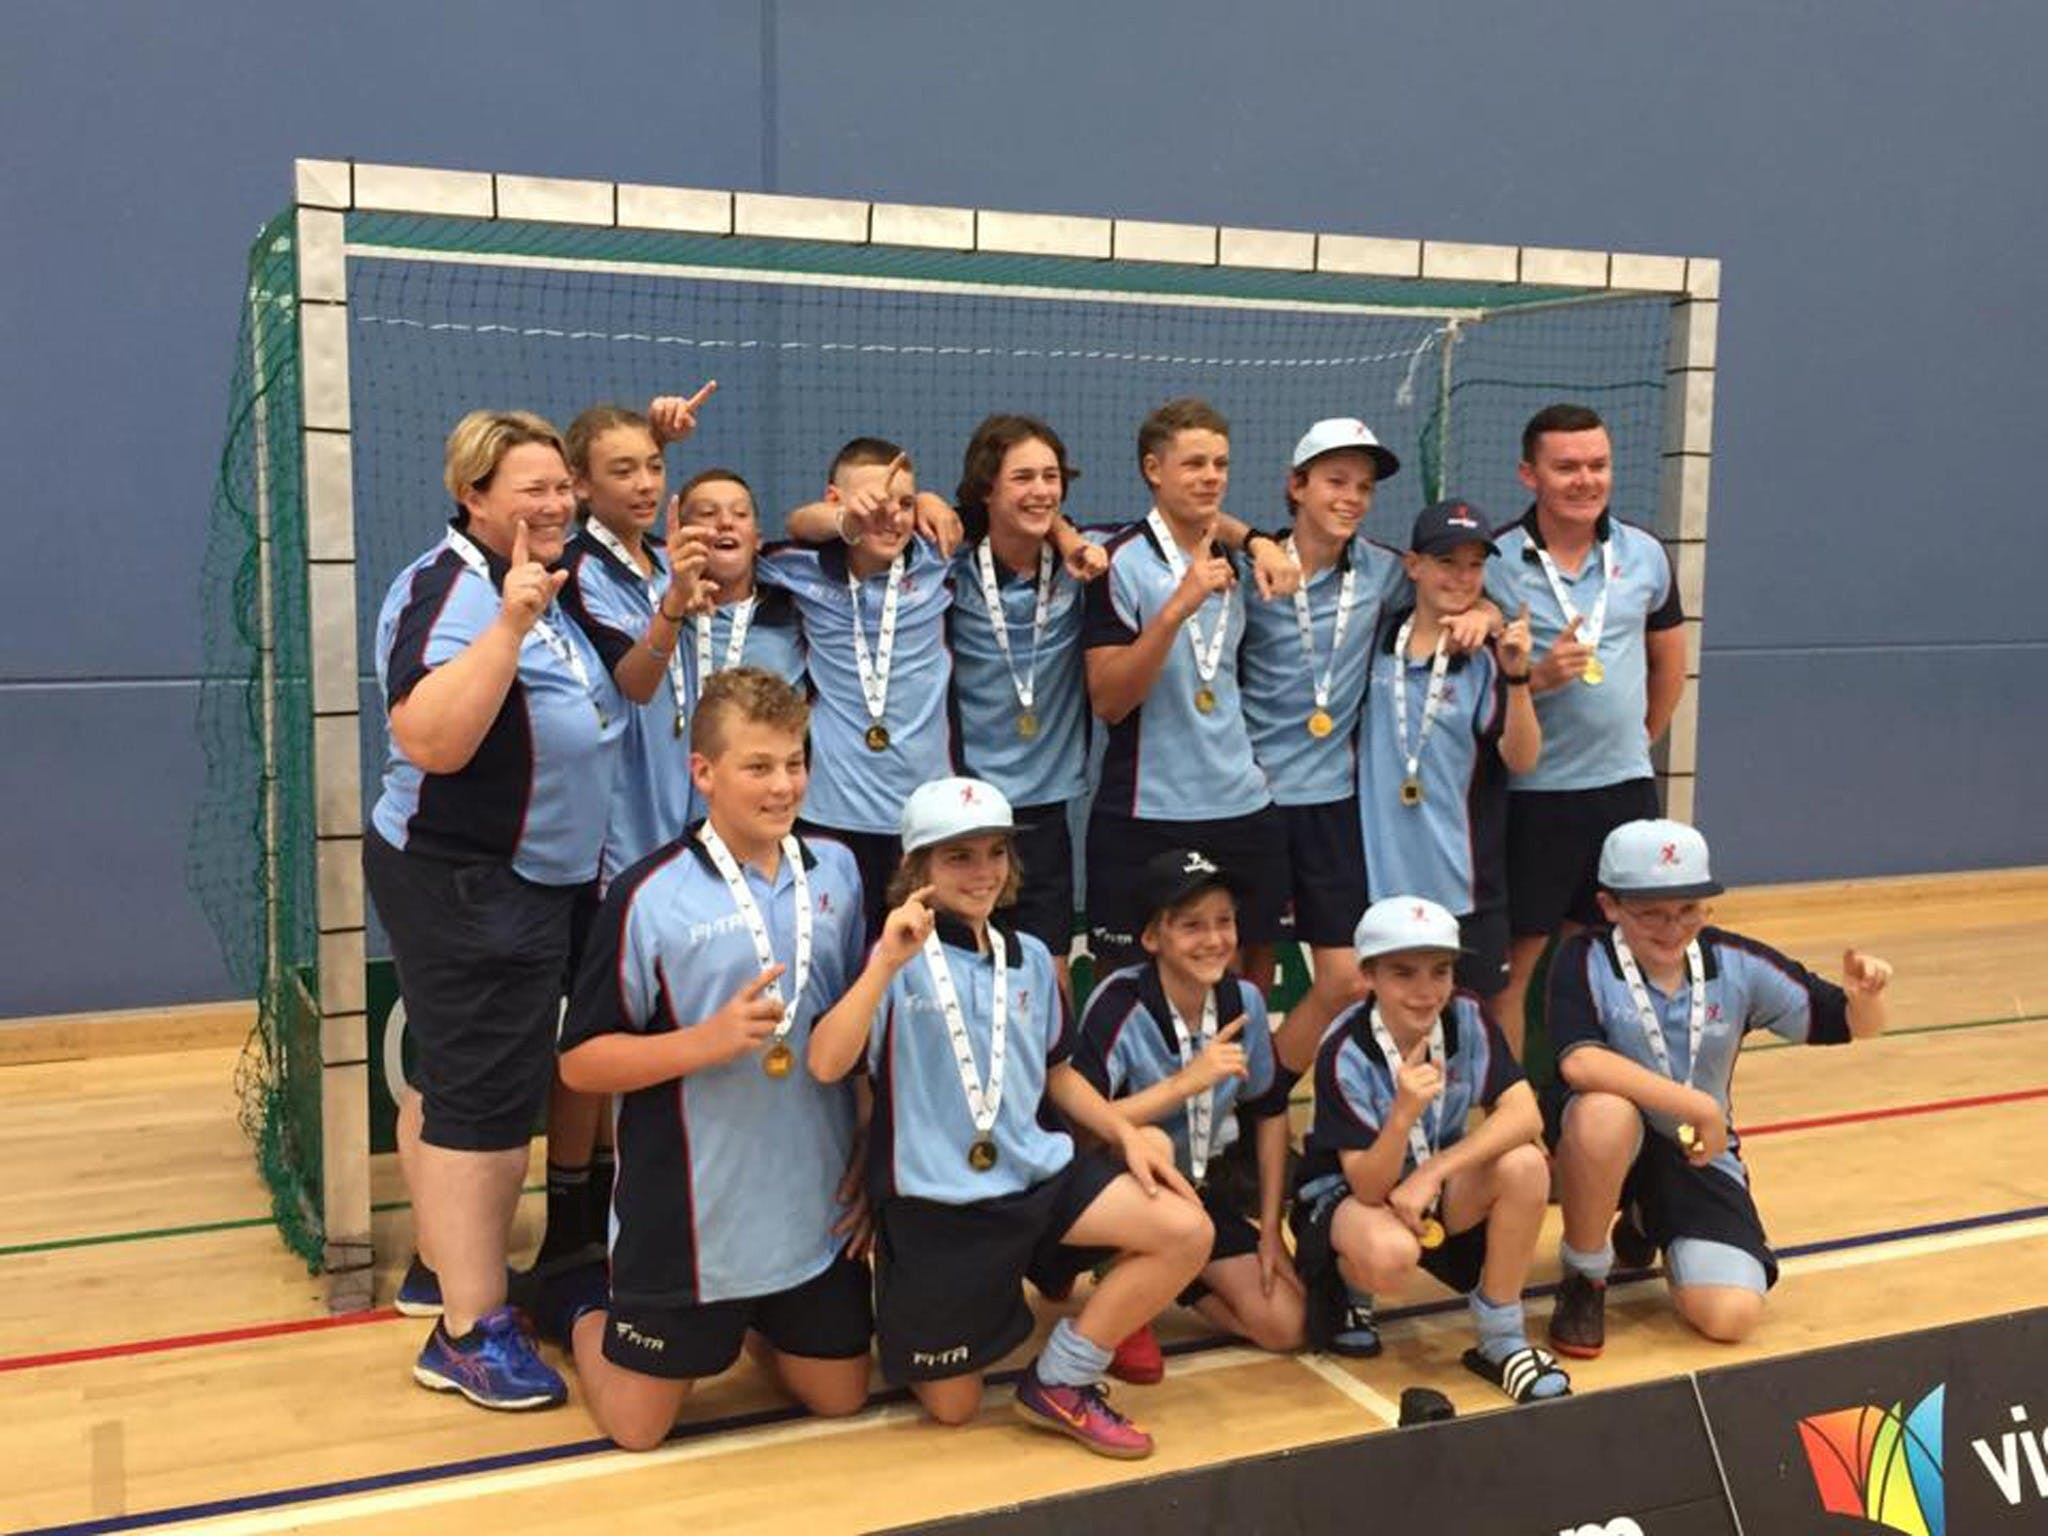 Hockey NSW Indoor State Championship  Under 18 Boys - Pubs Sydney